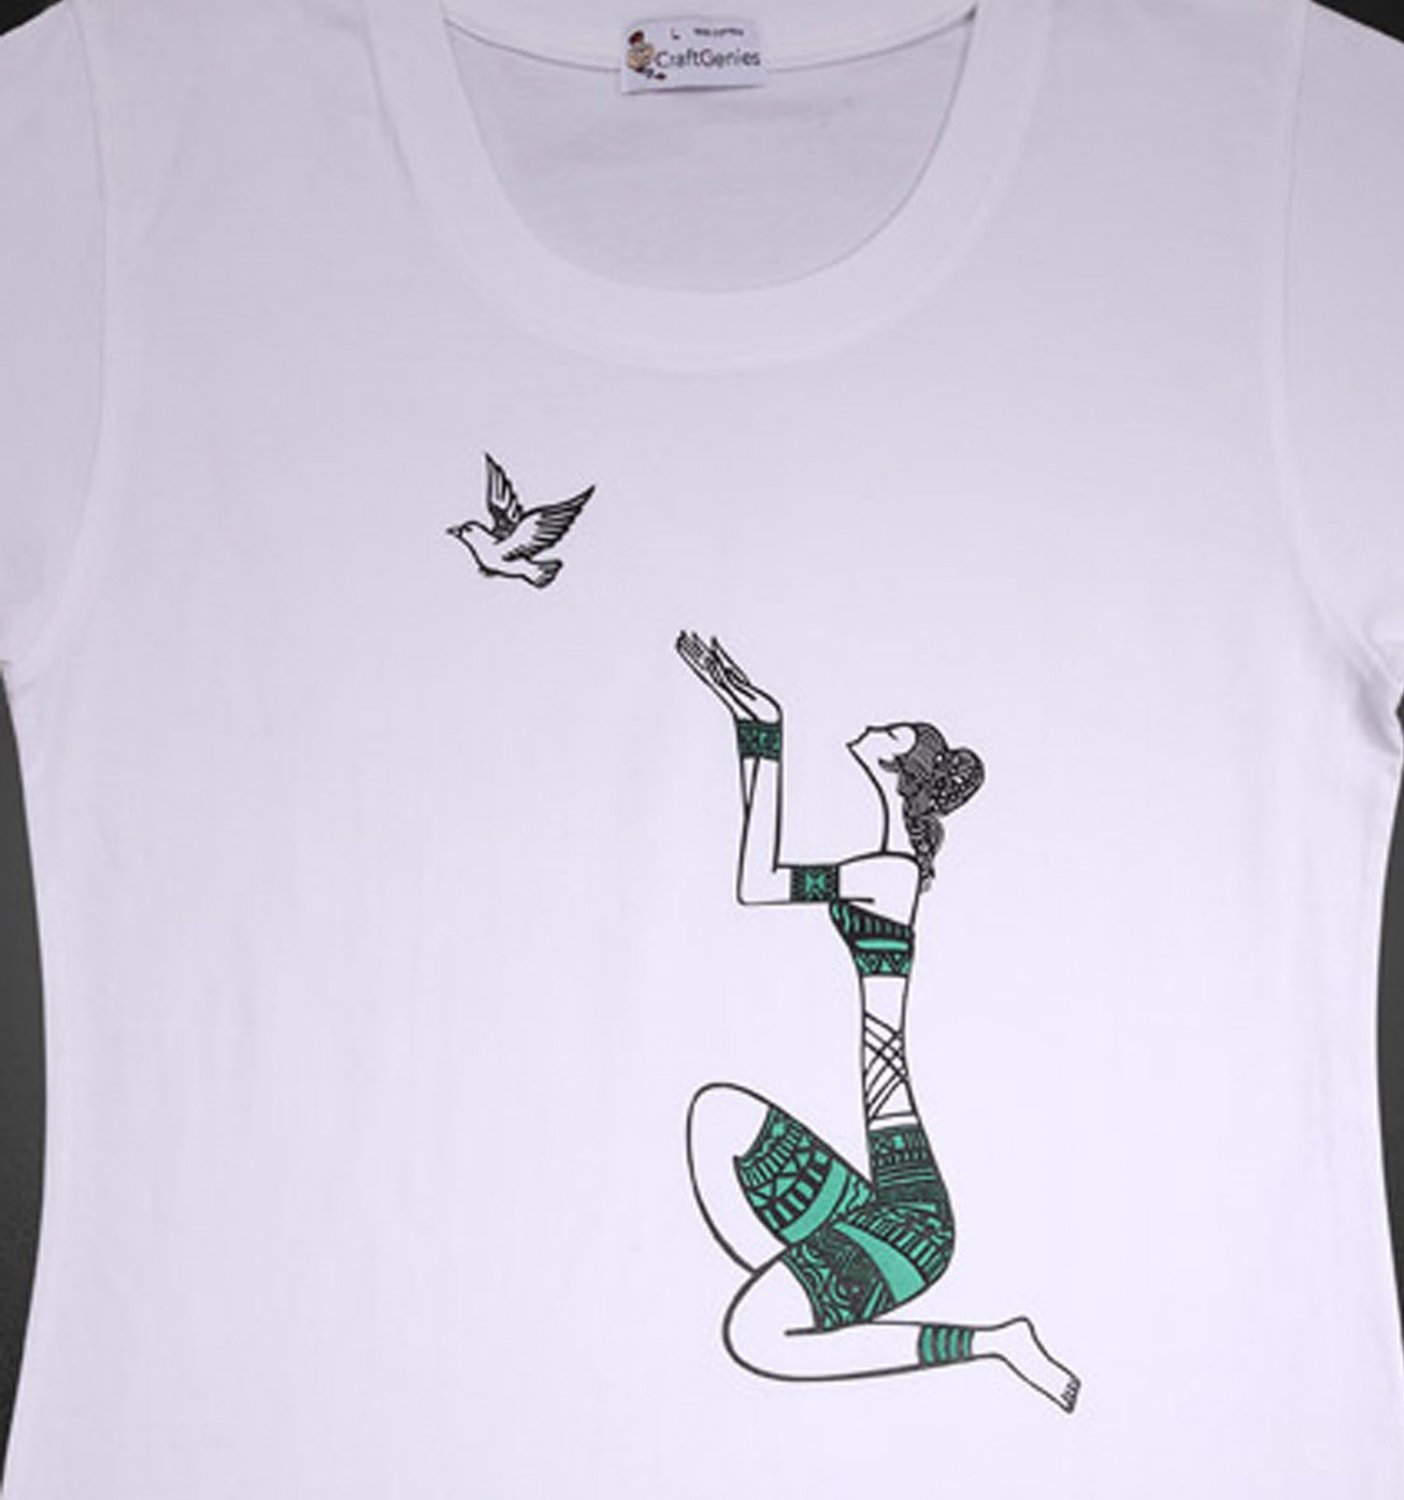 Hope & Peace T Shirt for Women, Green - New in Package!    (Women's XL)